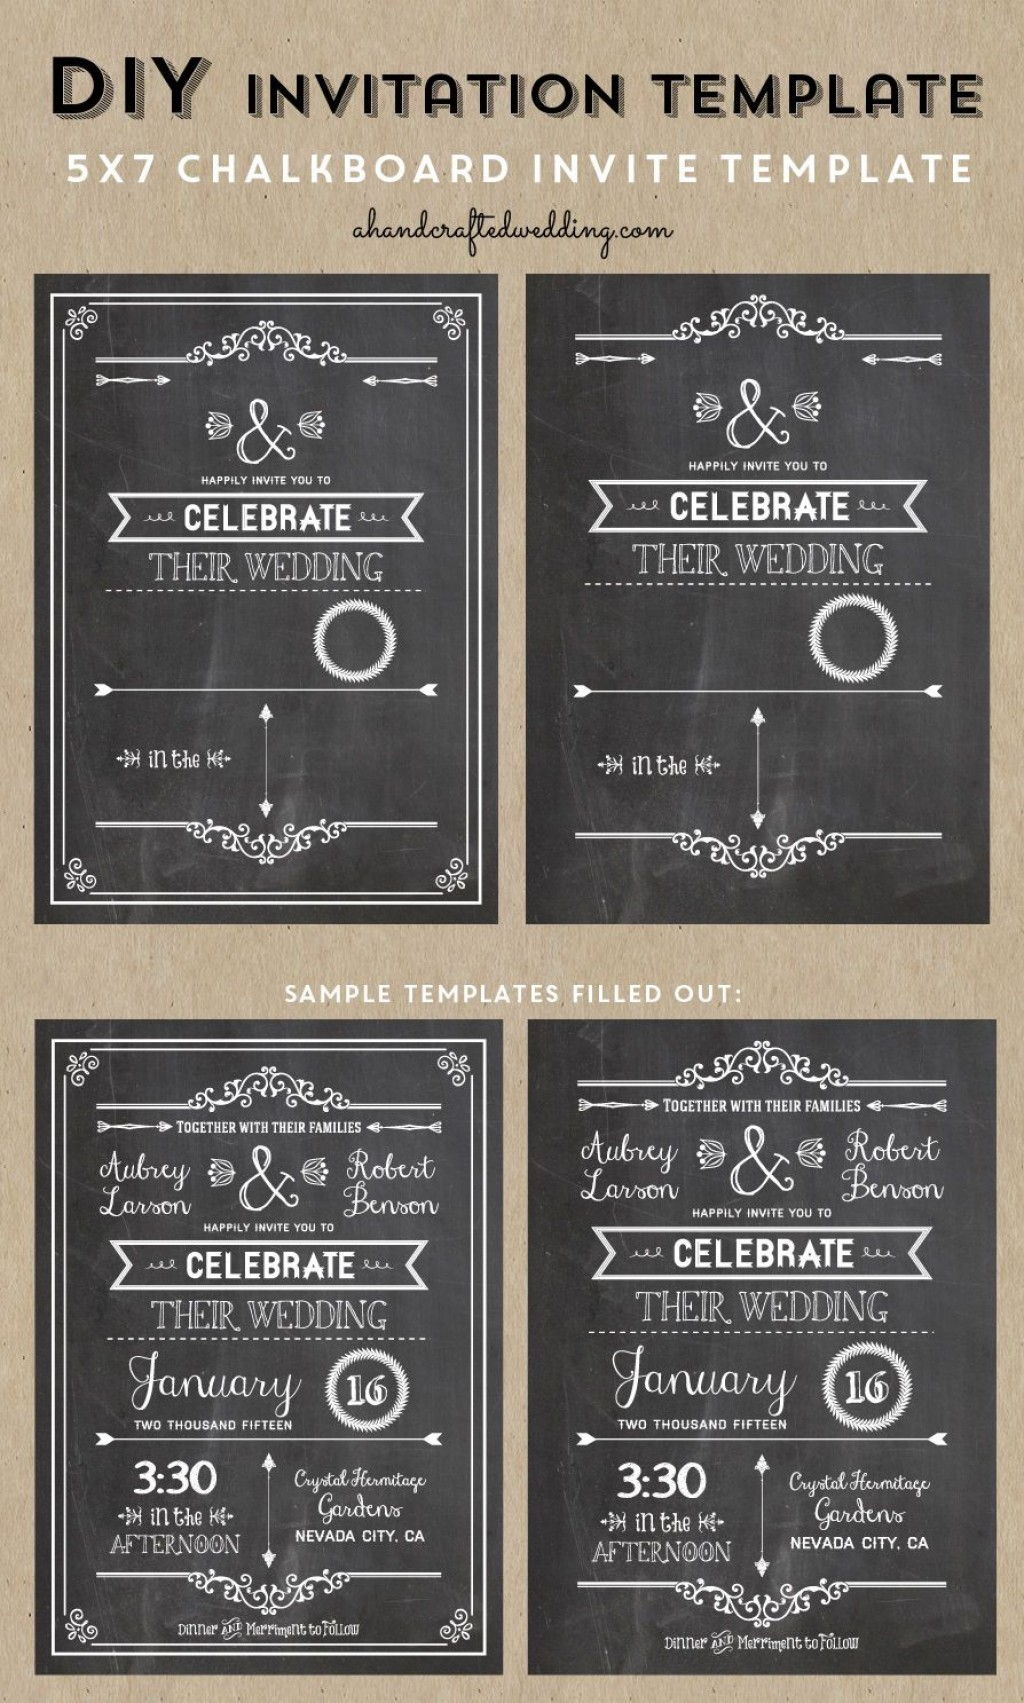 005 Wondrou Chalkboard Invitation Template Free Picture  Download BirthdayLarge